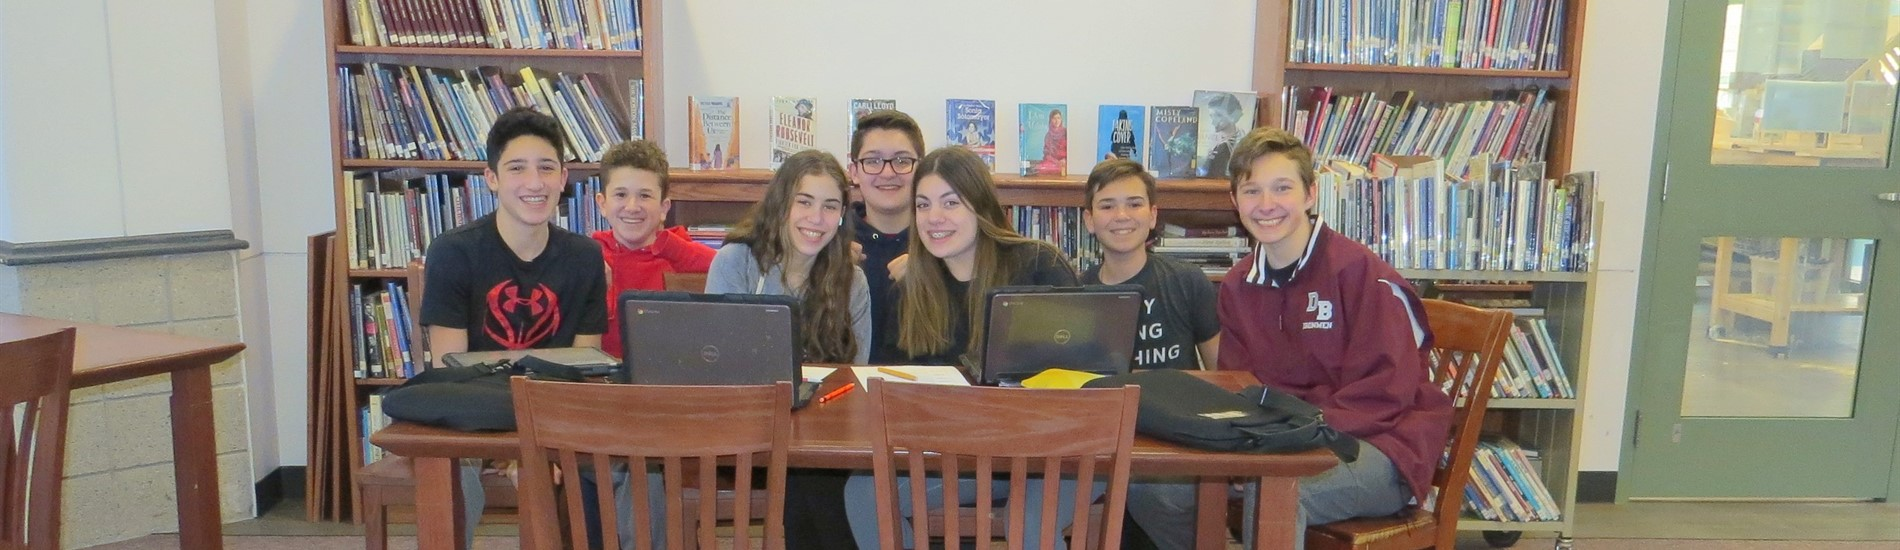 8th graders in our media center